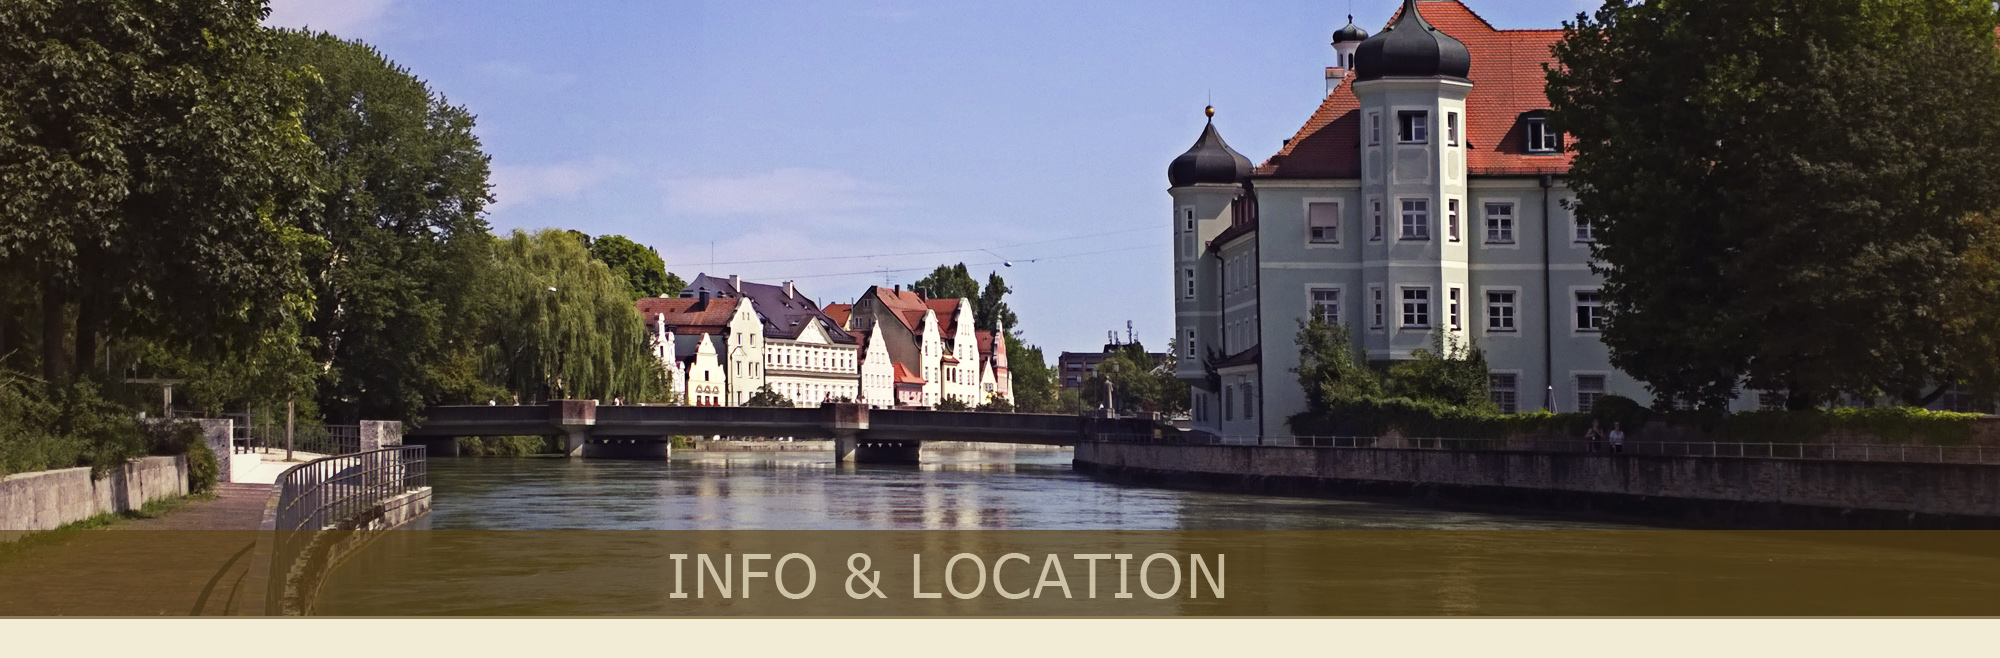 Landshut - Hotel Lifestyle Info and Location